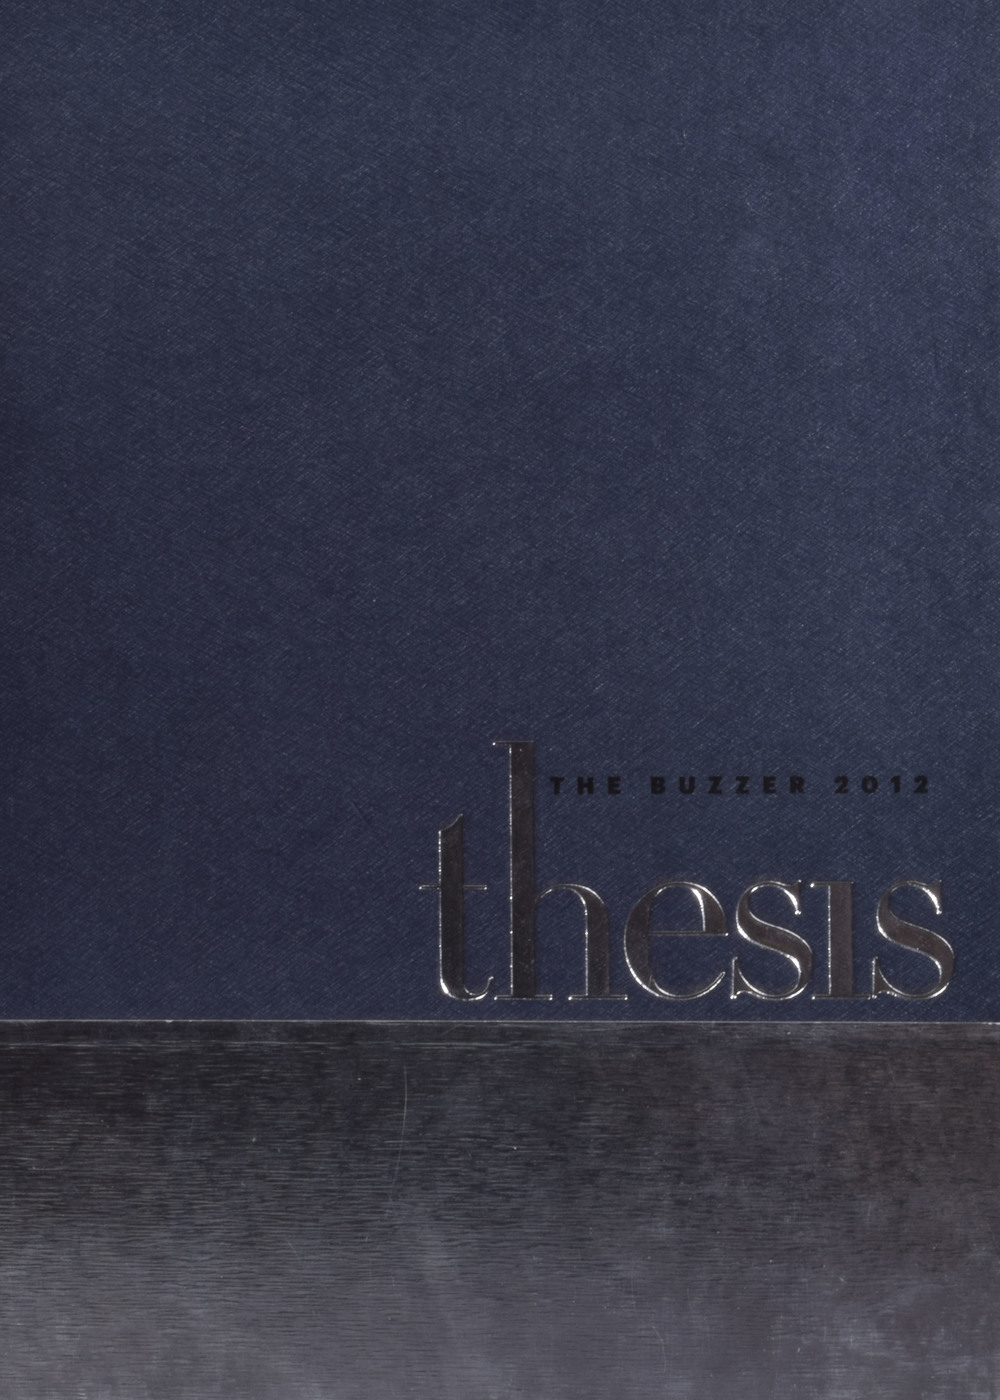 2012 Thesis, Vol. 85- - - Gold Crown (CSPA), Pacemaker (NSPA) State Trophy Class (VHSL)